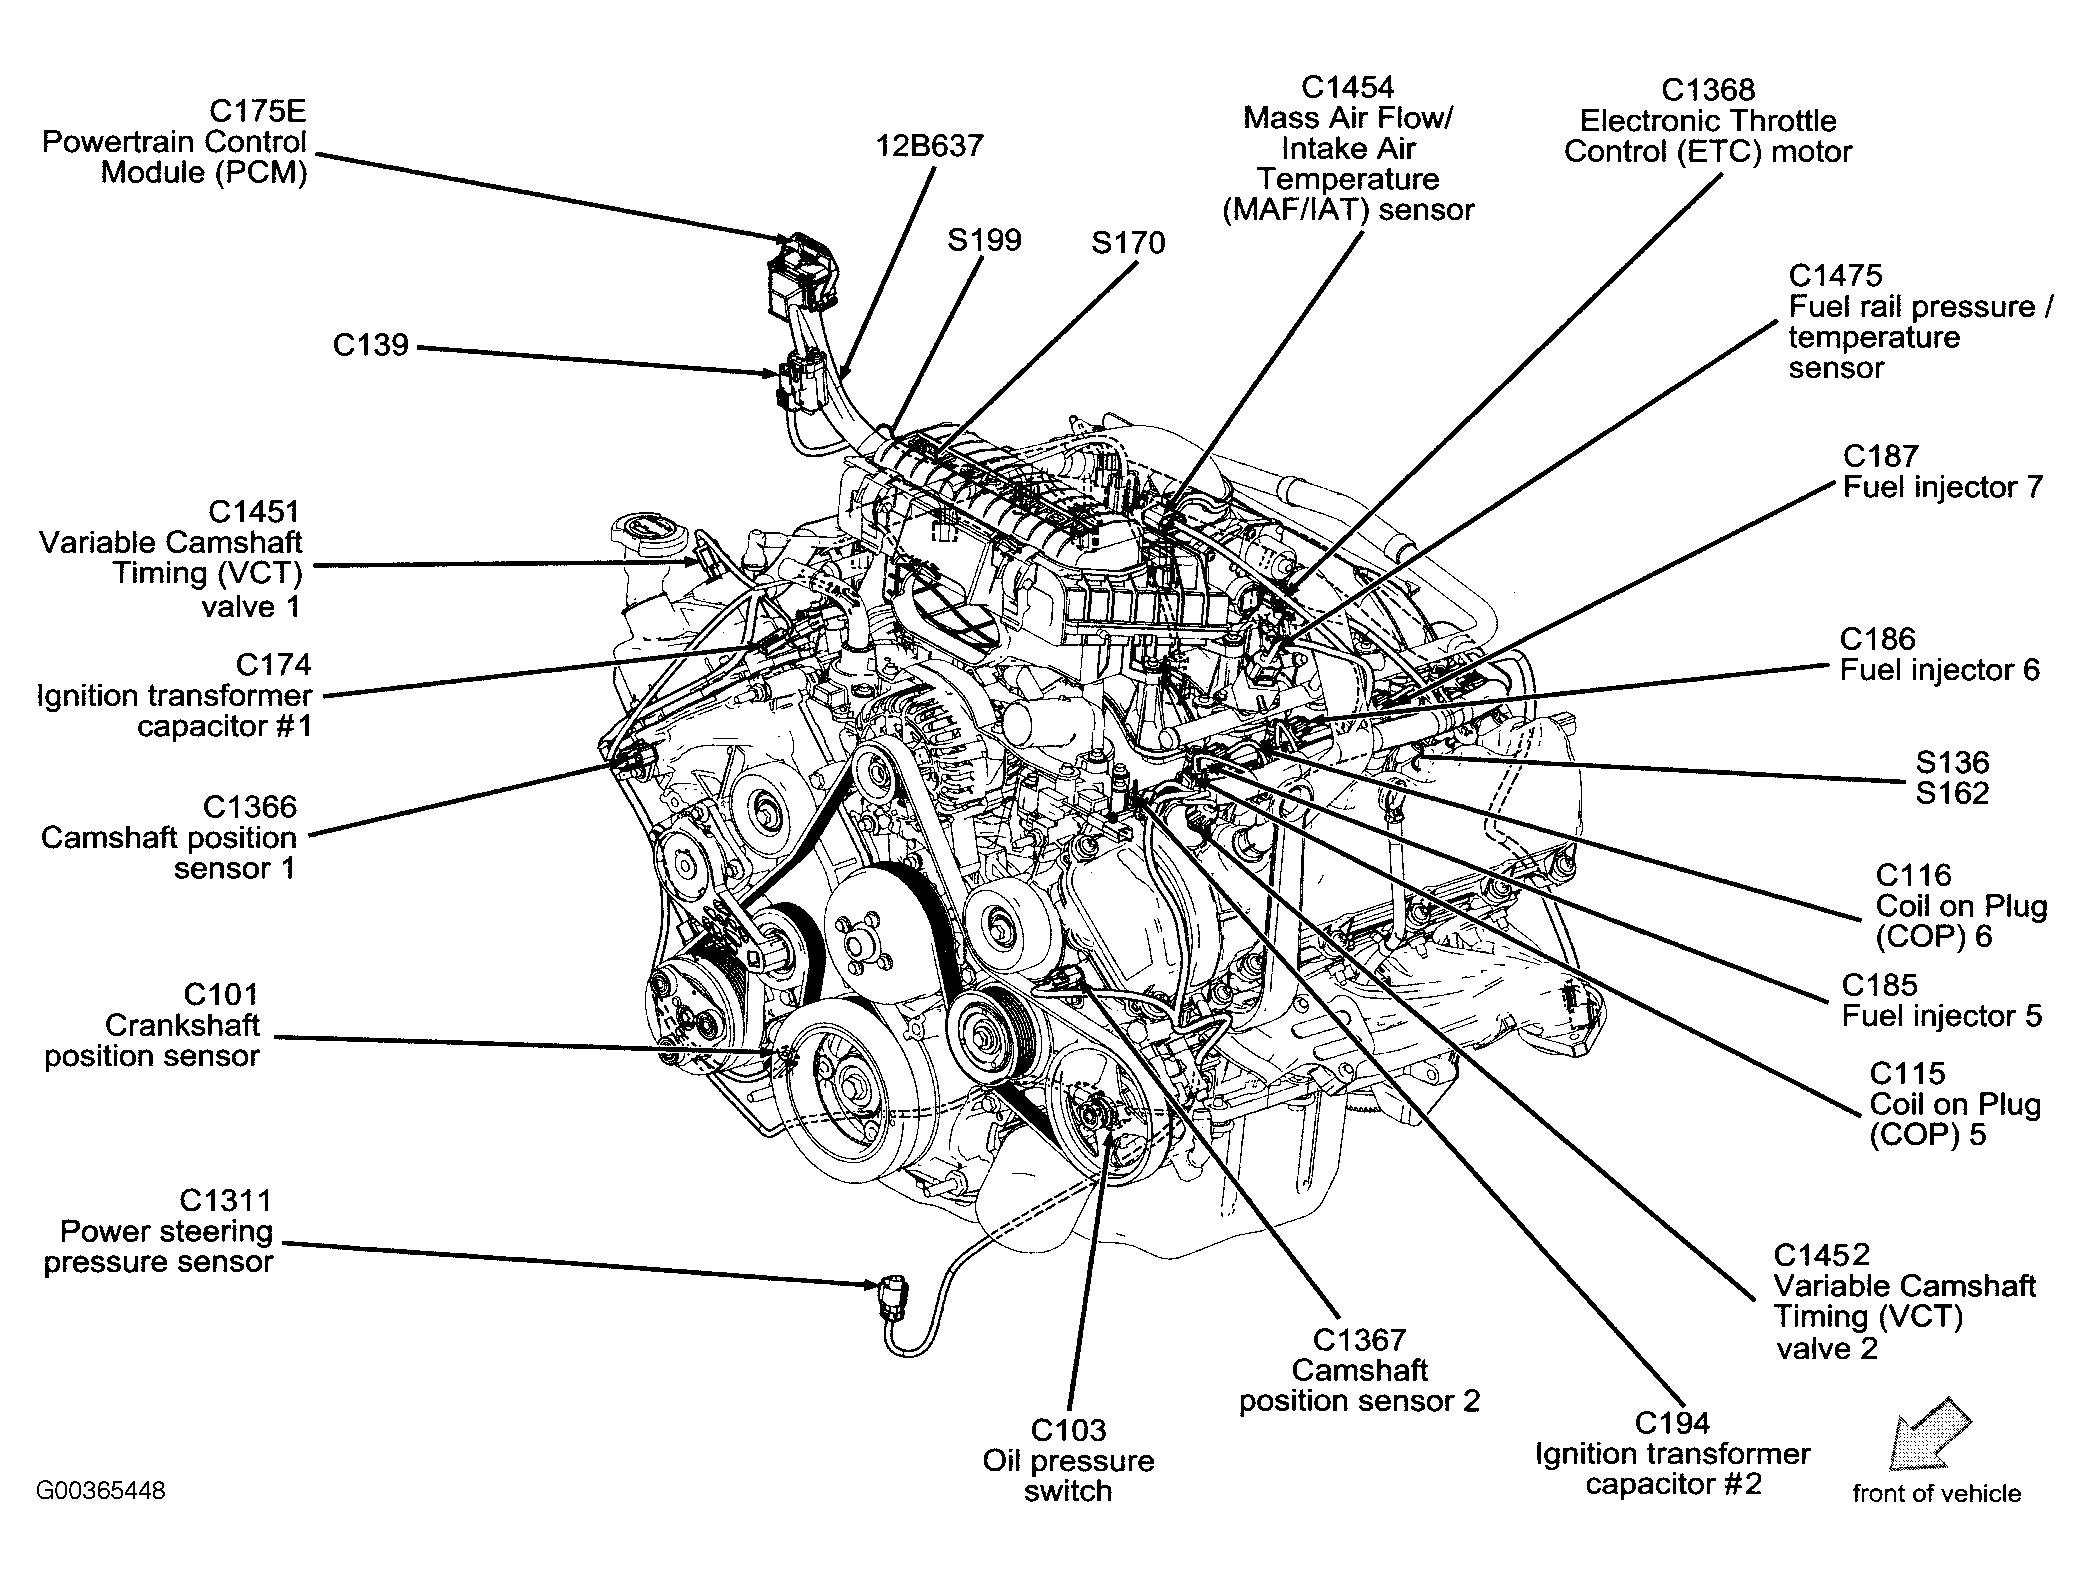 2004 ford F150 4 6 Engine Diagram ford Escape Engine Diagram Simple Guide About Wiring Diagram • Of 2004 ford F150 4 6 Engine Diagram